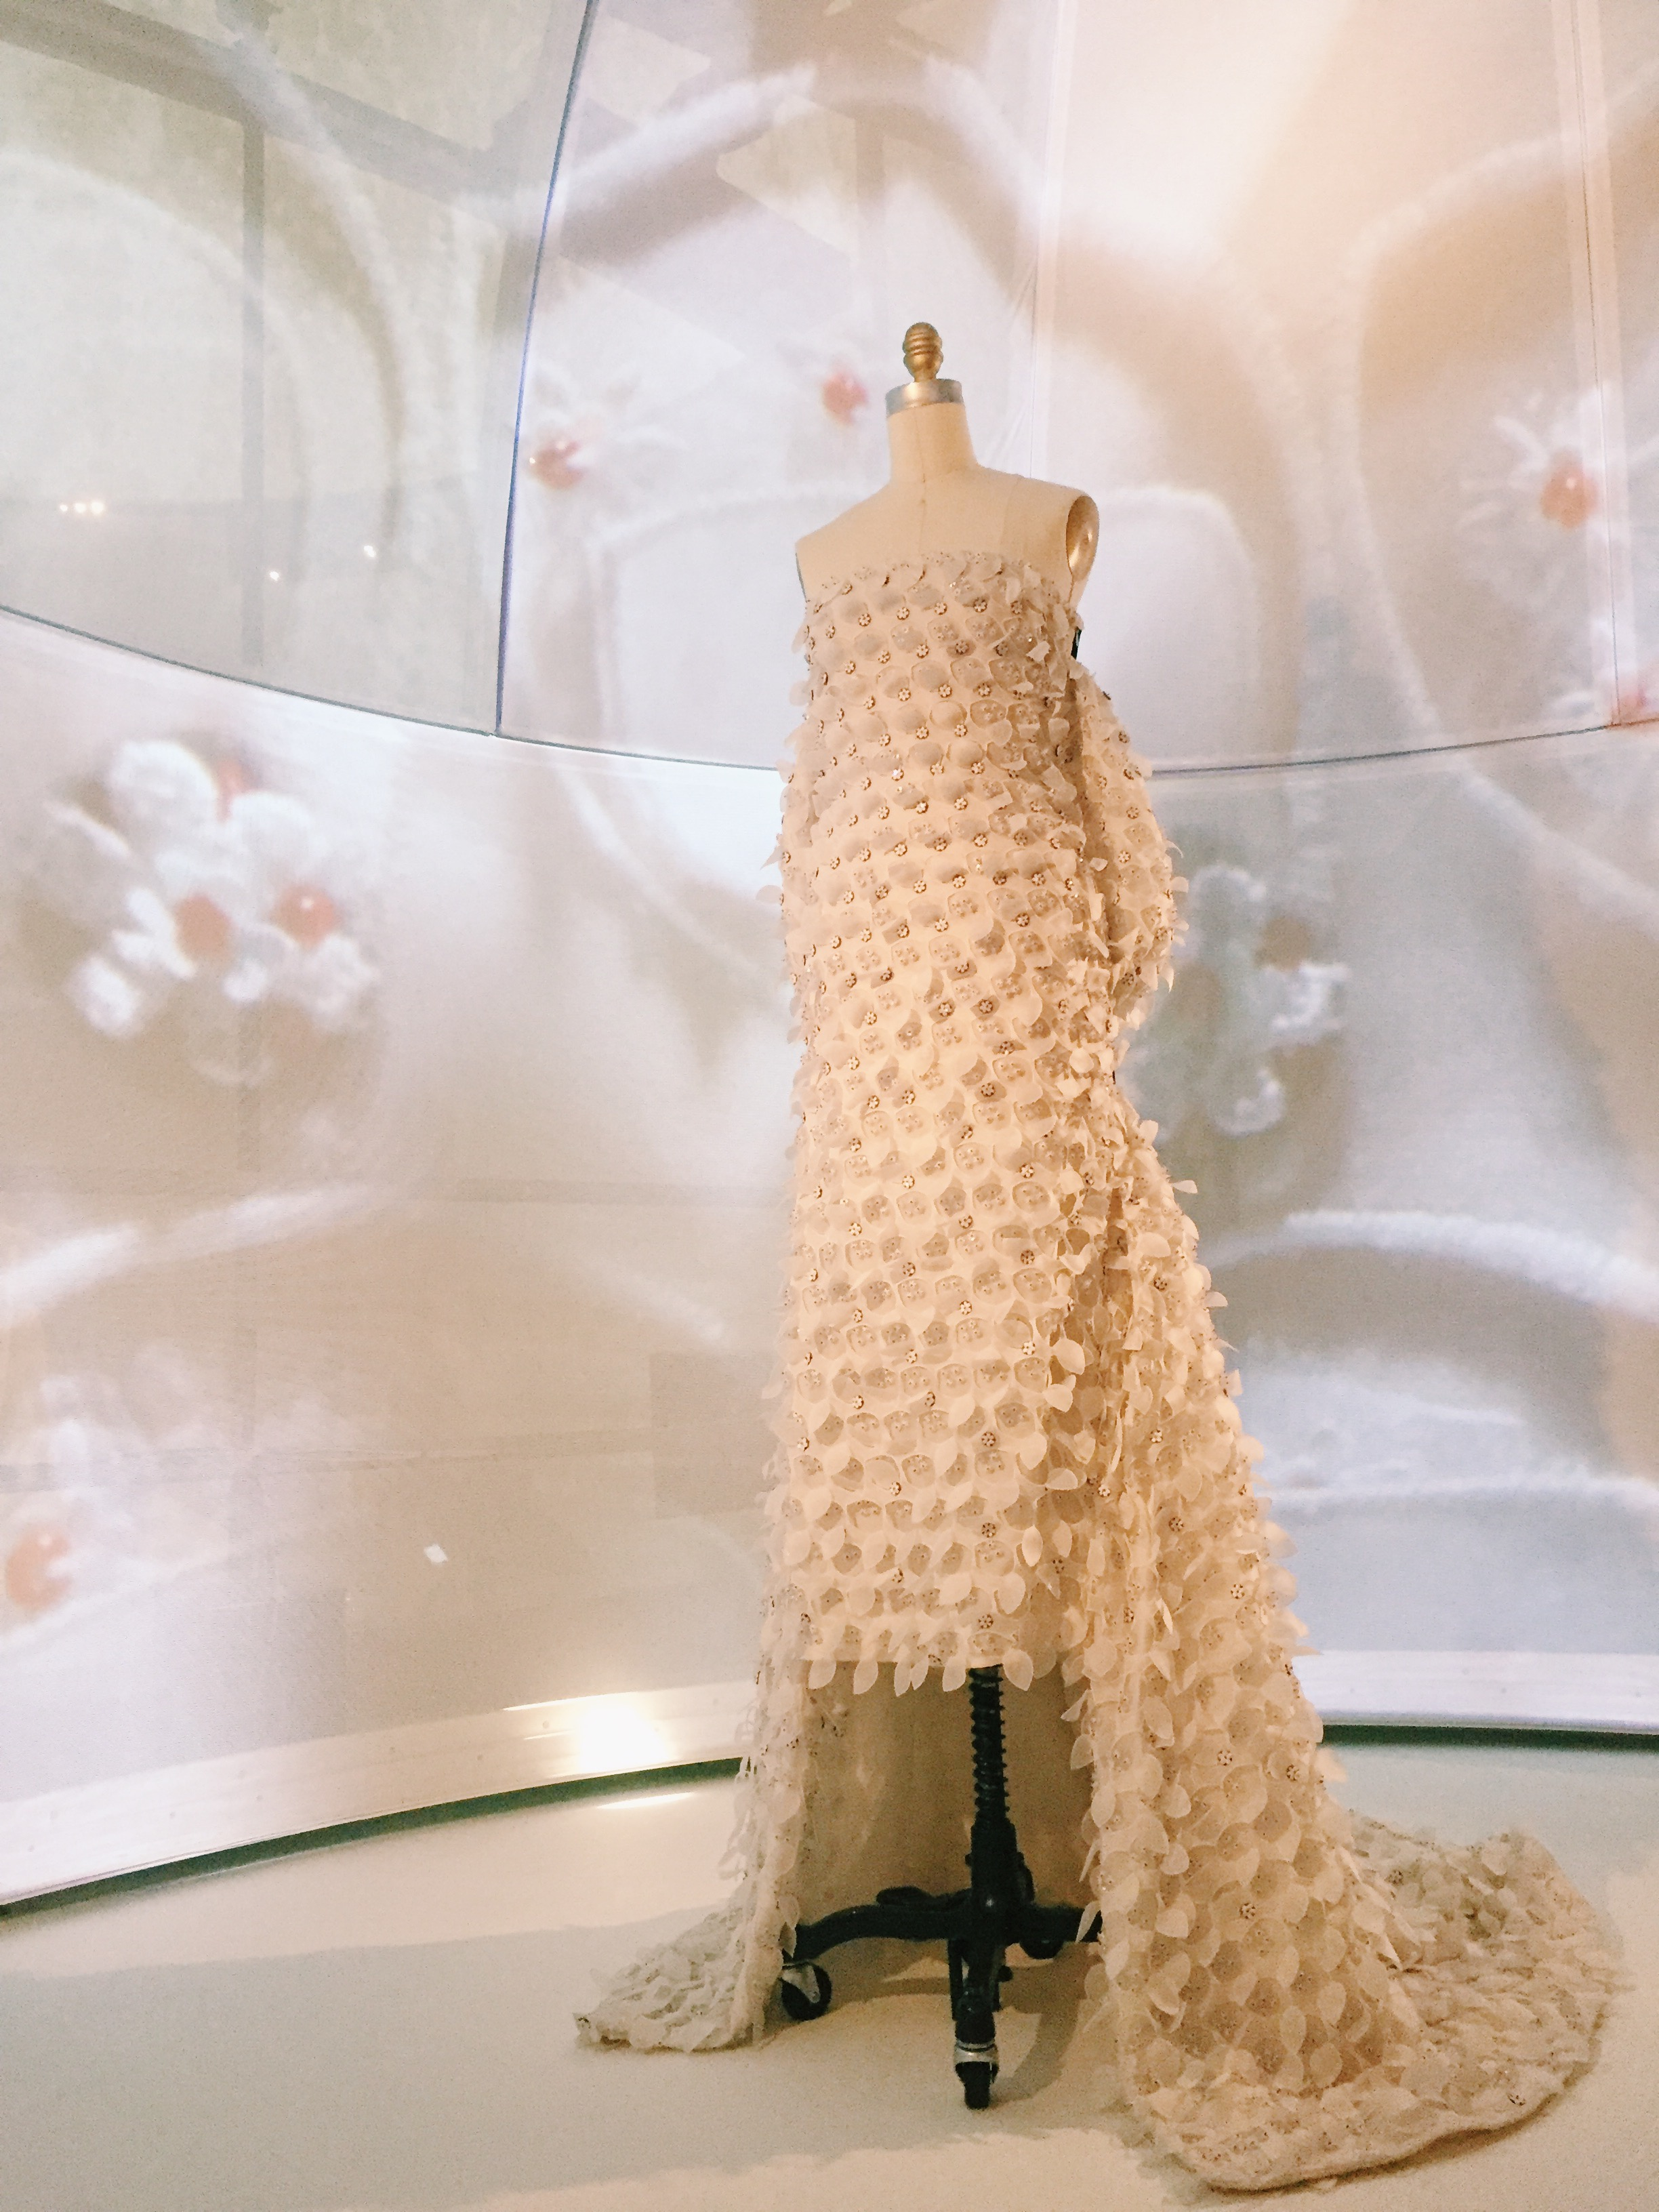 House of Dior Dress